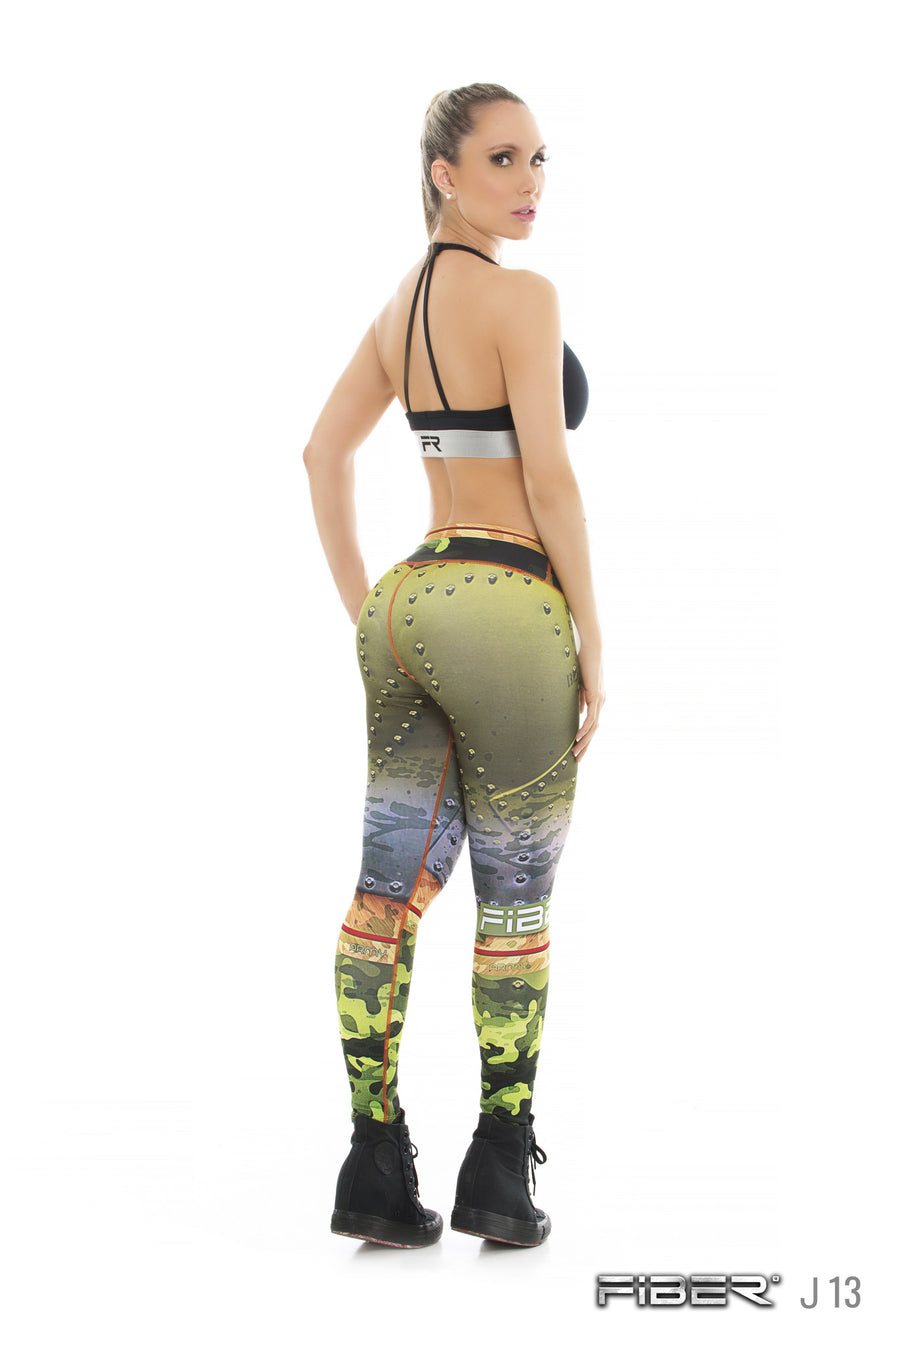 Fiber Legging - IRON 13 Back